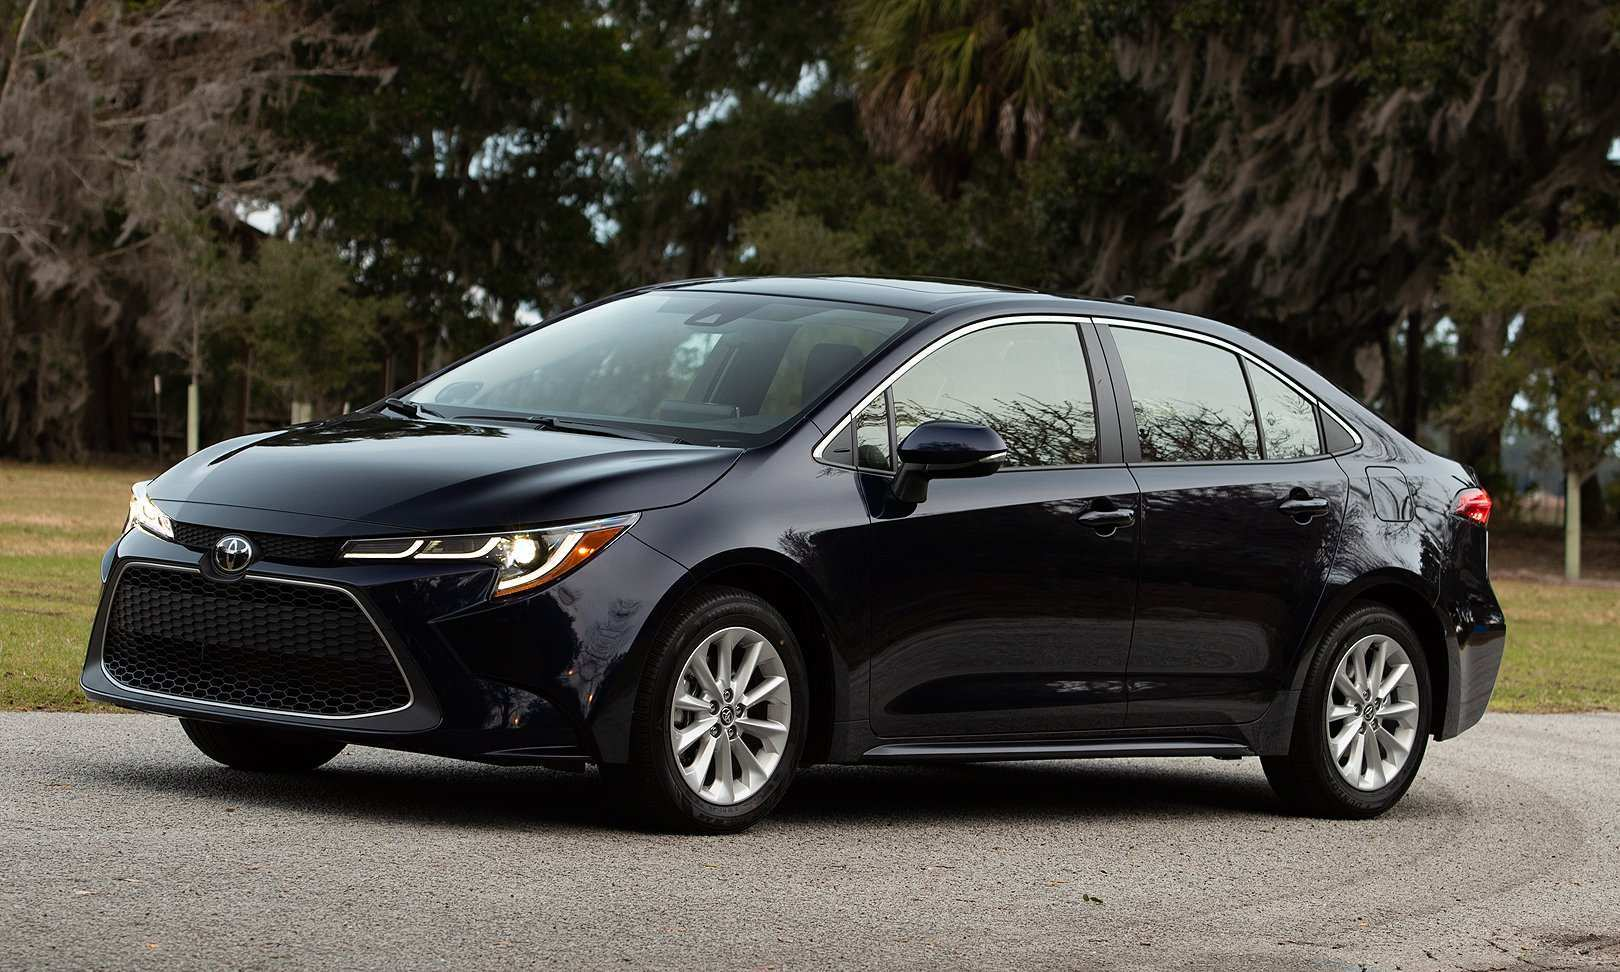 69 The Price Of 2020 Toyota Corolla Price Design And Review